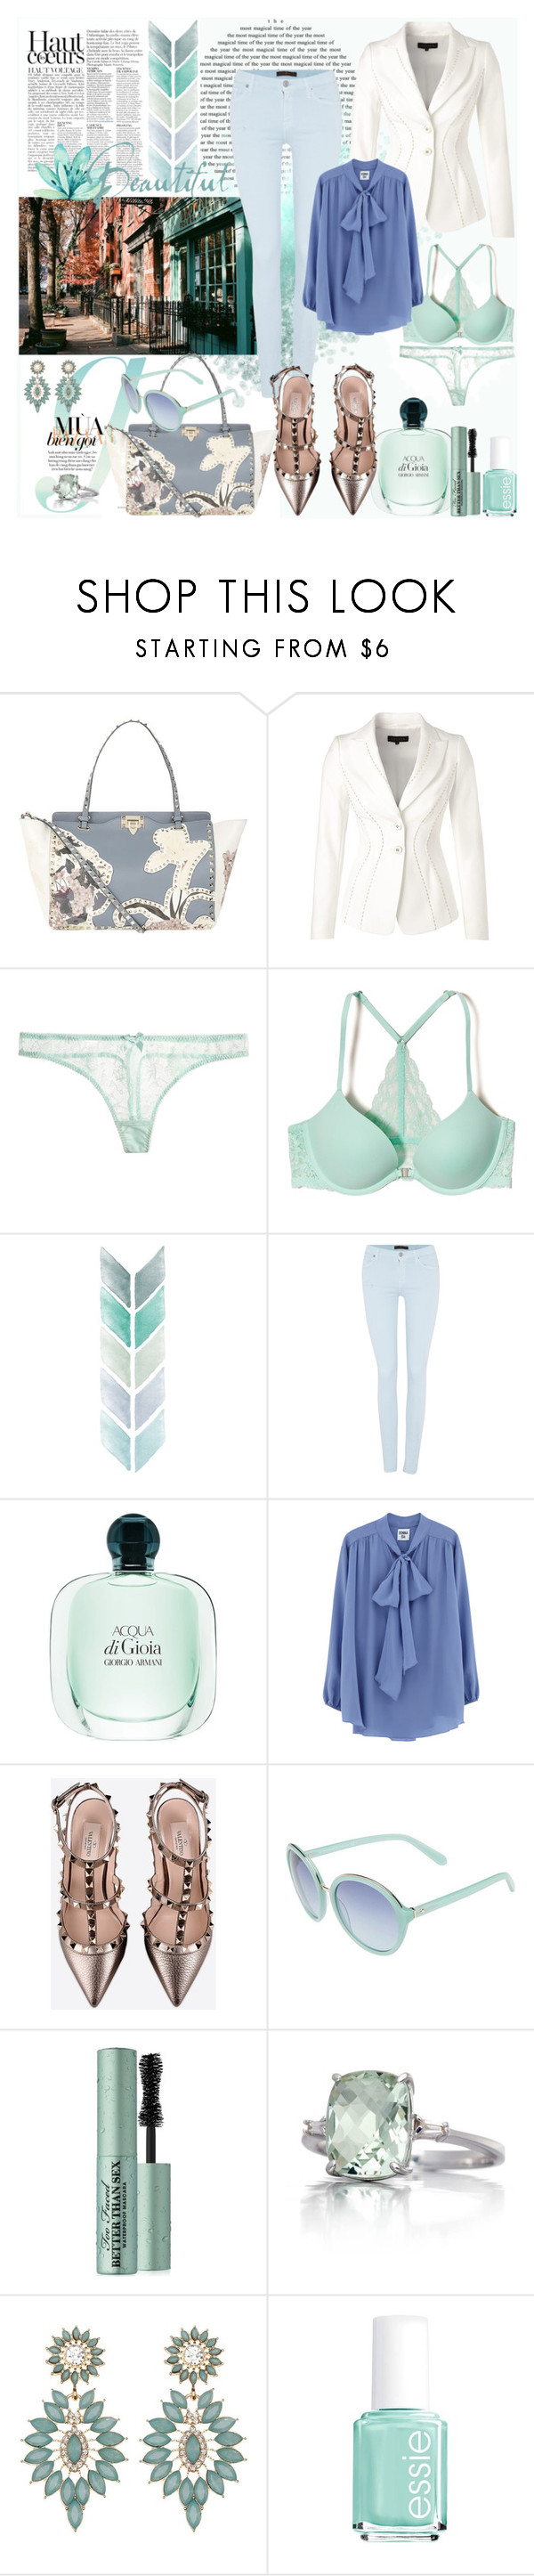 """""""Beautiful pastel colors"""" by the-wardrobe-of-wishes ❤ liked on Polyvore featuring Valentino, ESCADA, Anja, L'Agent By Agent Provocateur, Hollister Co., 7 For All Mankind, Giorgio Armani, Kate Spade, Too Faced Cosmetics and Belk & Co."""